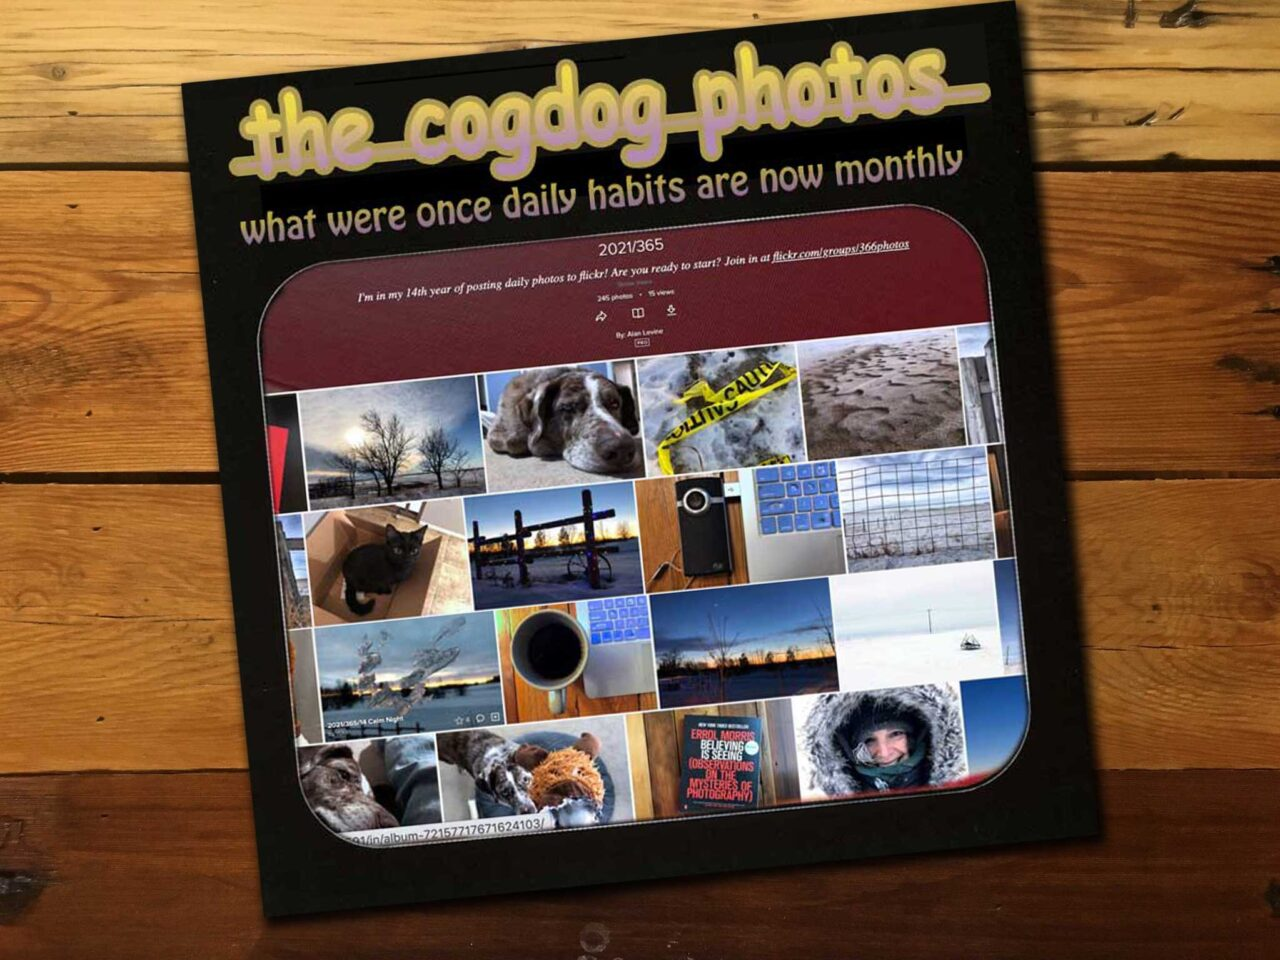 A mockeup album cover titled The CogDog Photos, what were once daily habits are not monthly including  the photos from my flickr daily photo album. It sits atop a wooden table.